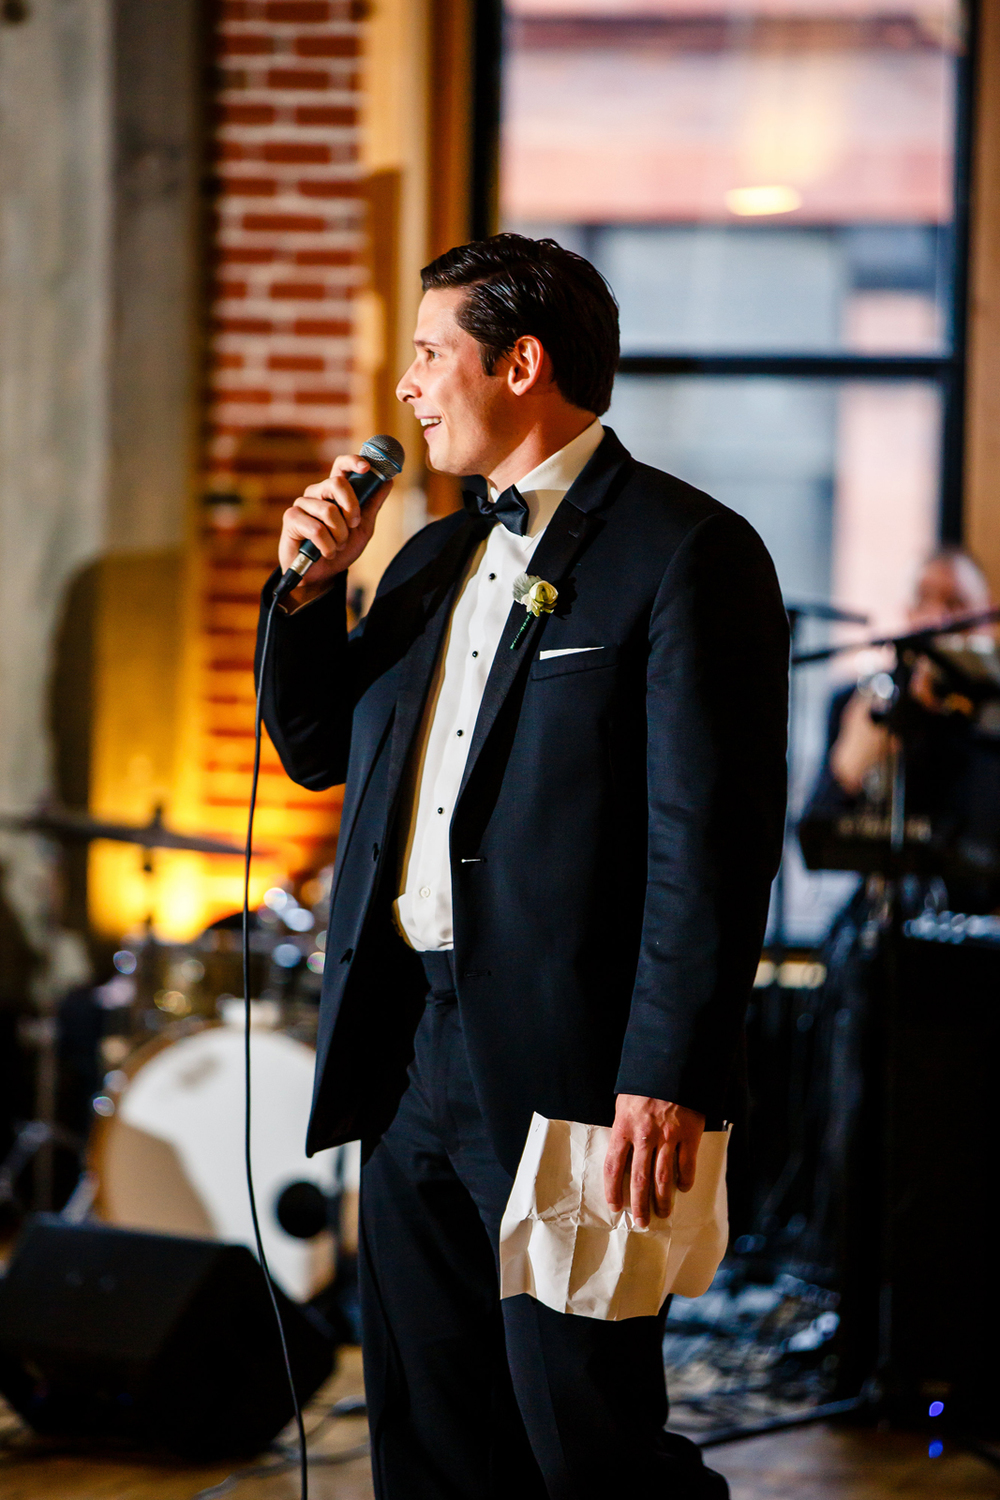 Wedding Party Speeches Gold Wedding Reception at Windows on Washington Downtown St. Louis Wedding Photographers by Oldani Photography 3.jpg